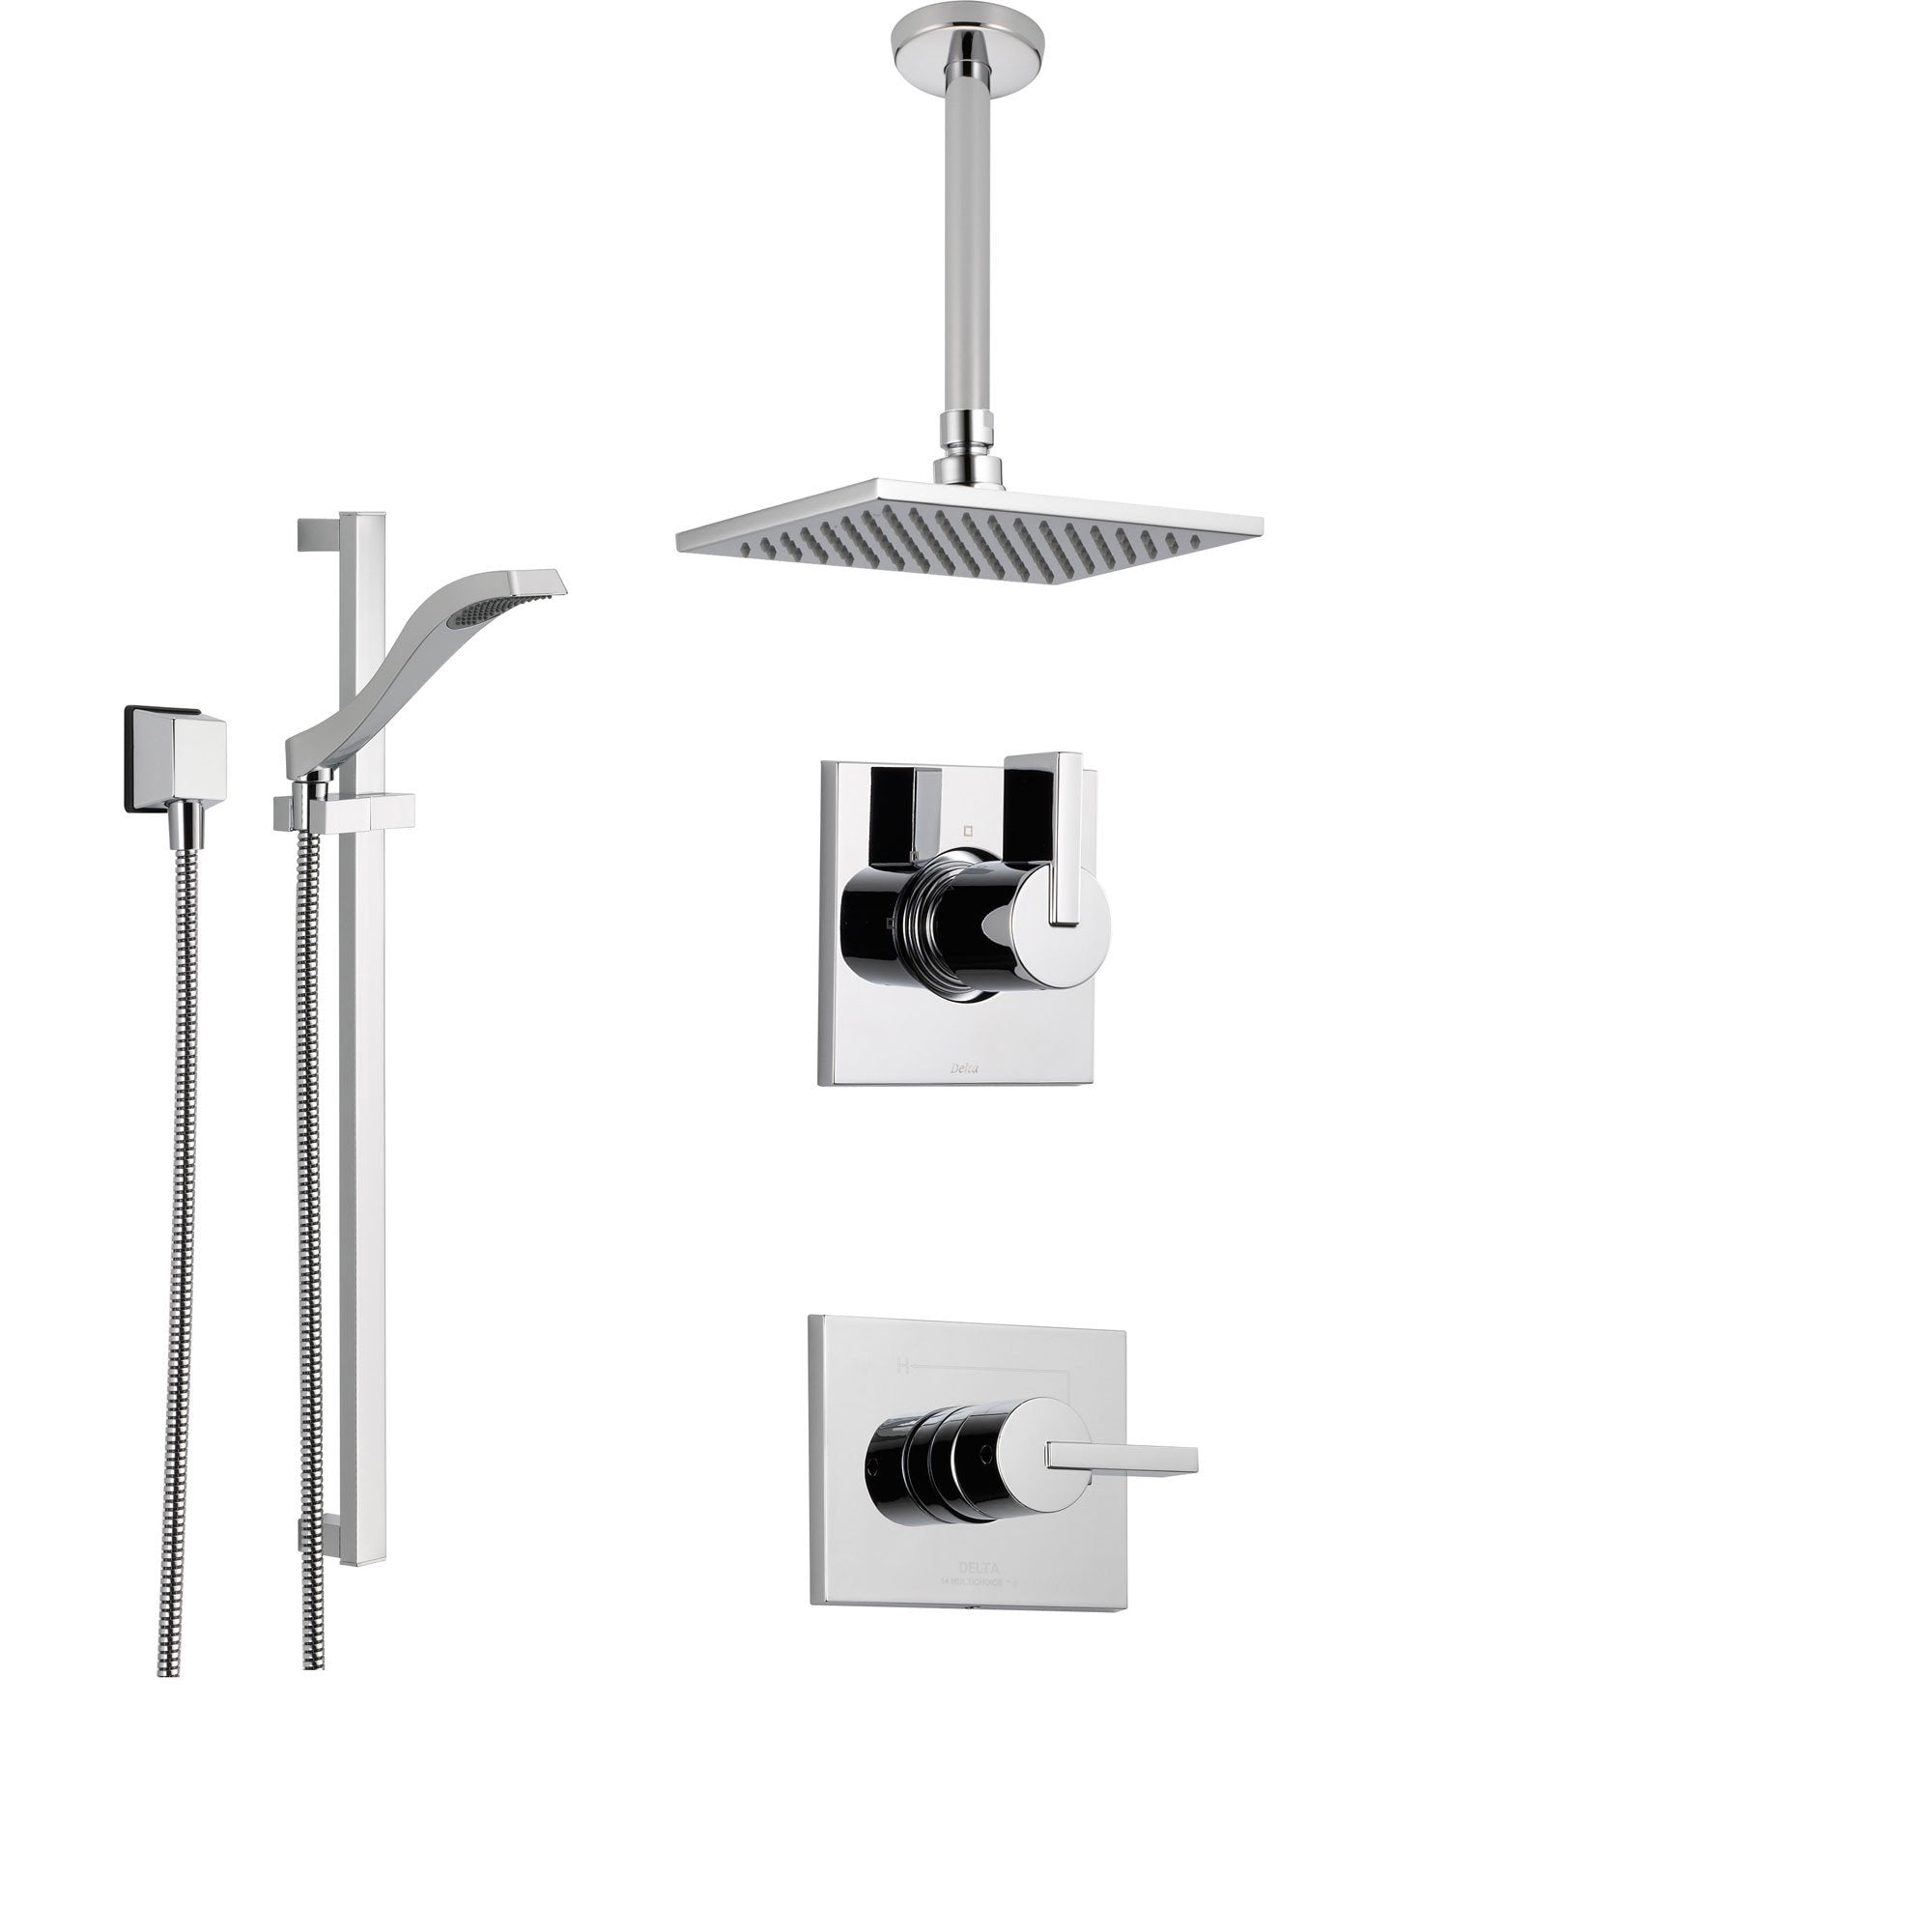 Delta Vero Chrome Shower System with Normal Shower Handle, 3-setting Diverter, Large Ceiling Mount Rain Showerhead, and Handheld Shower SS145383